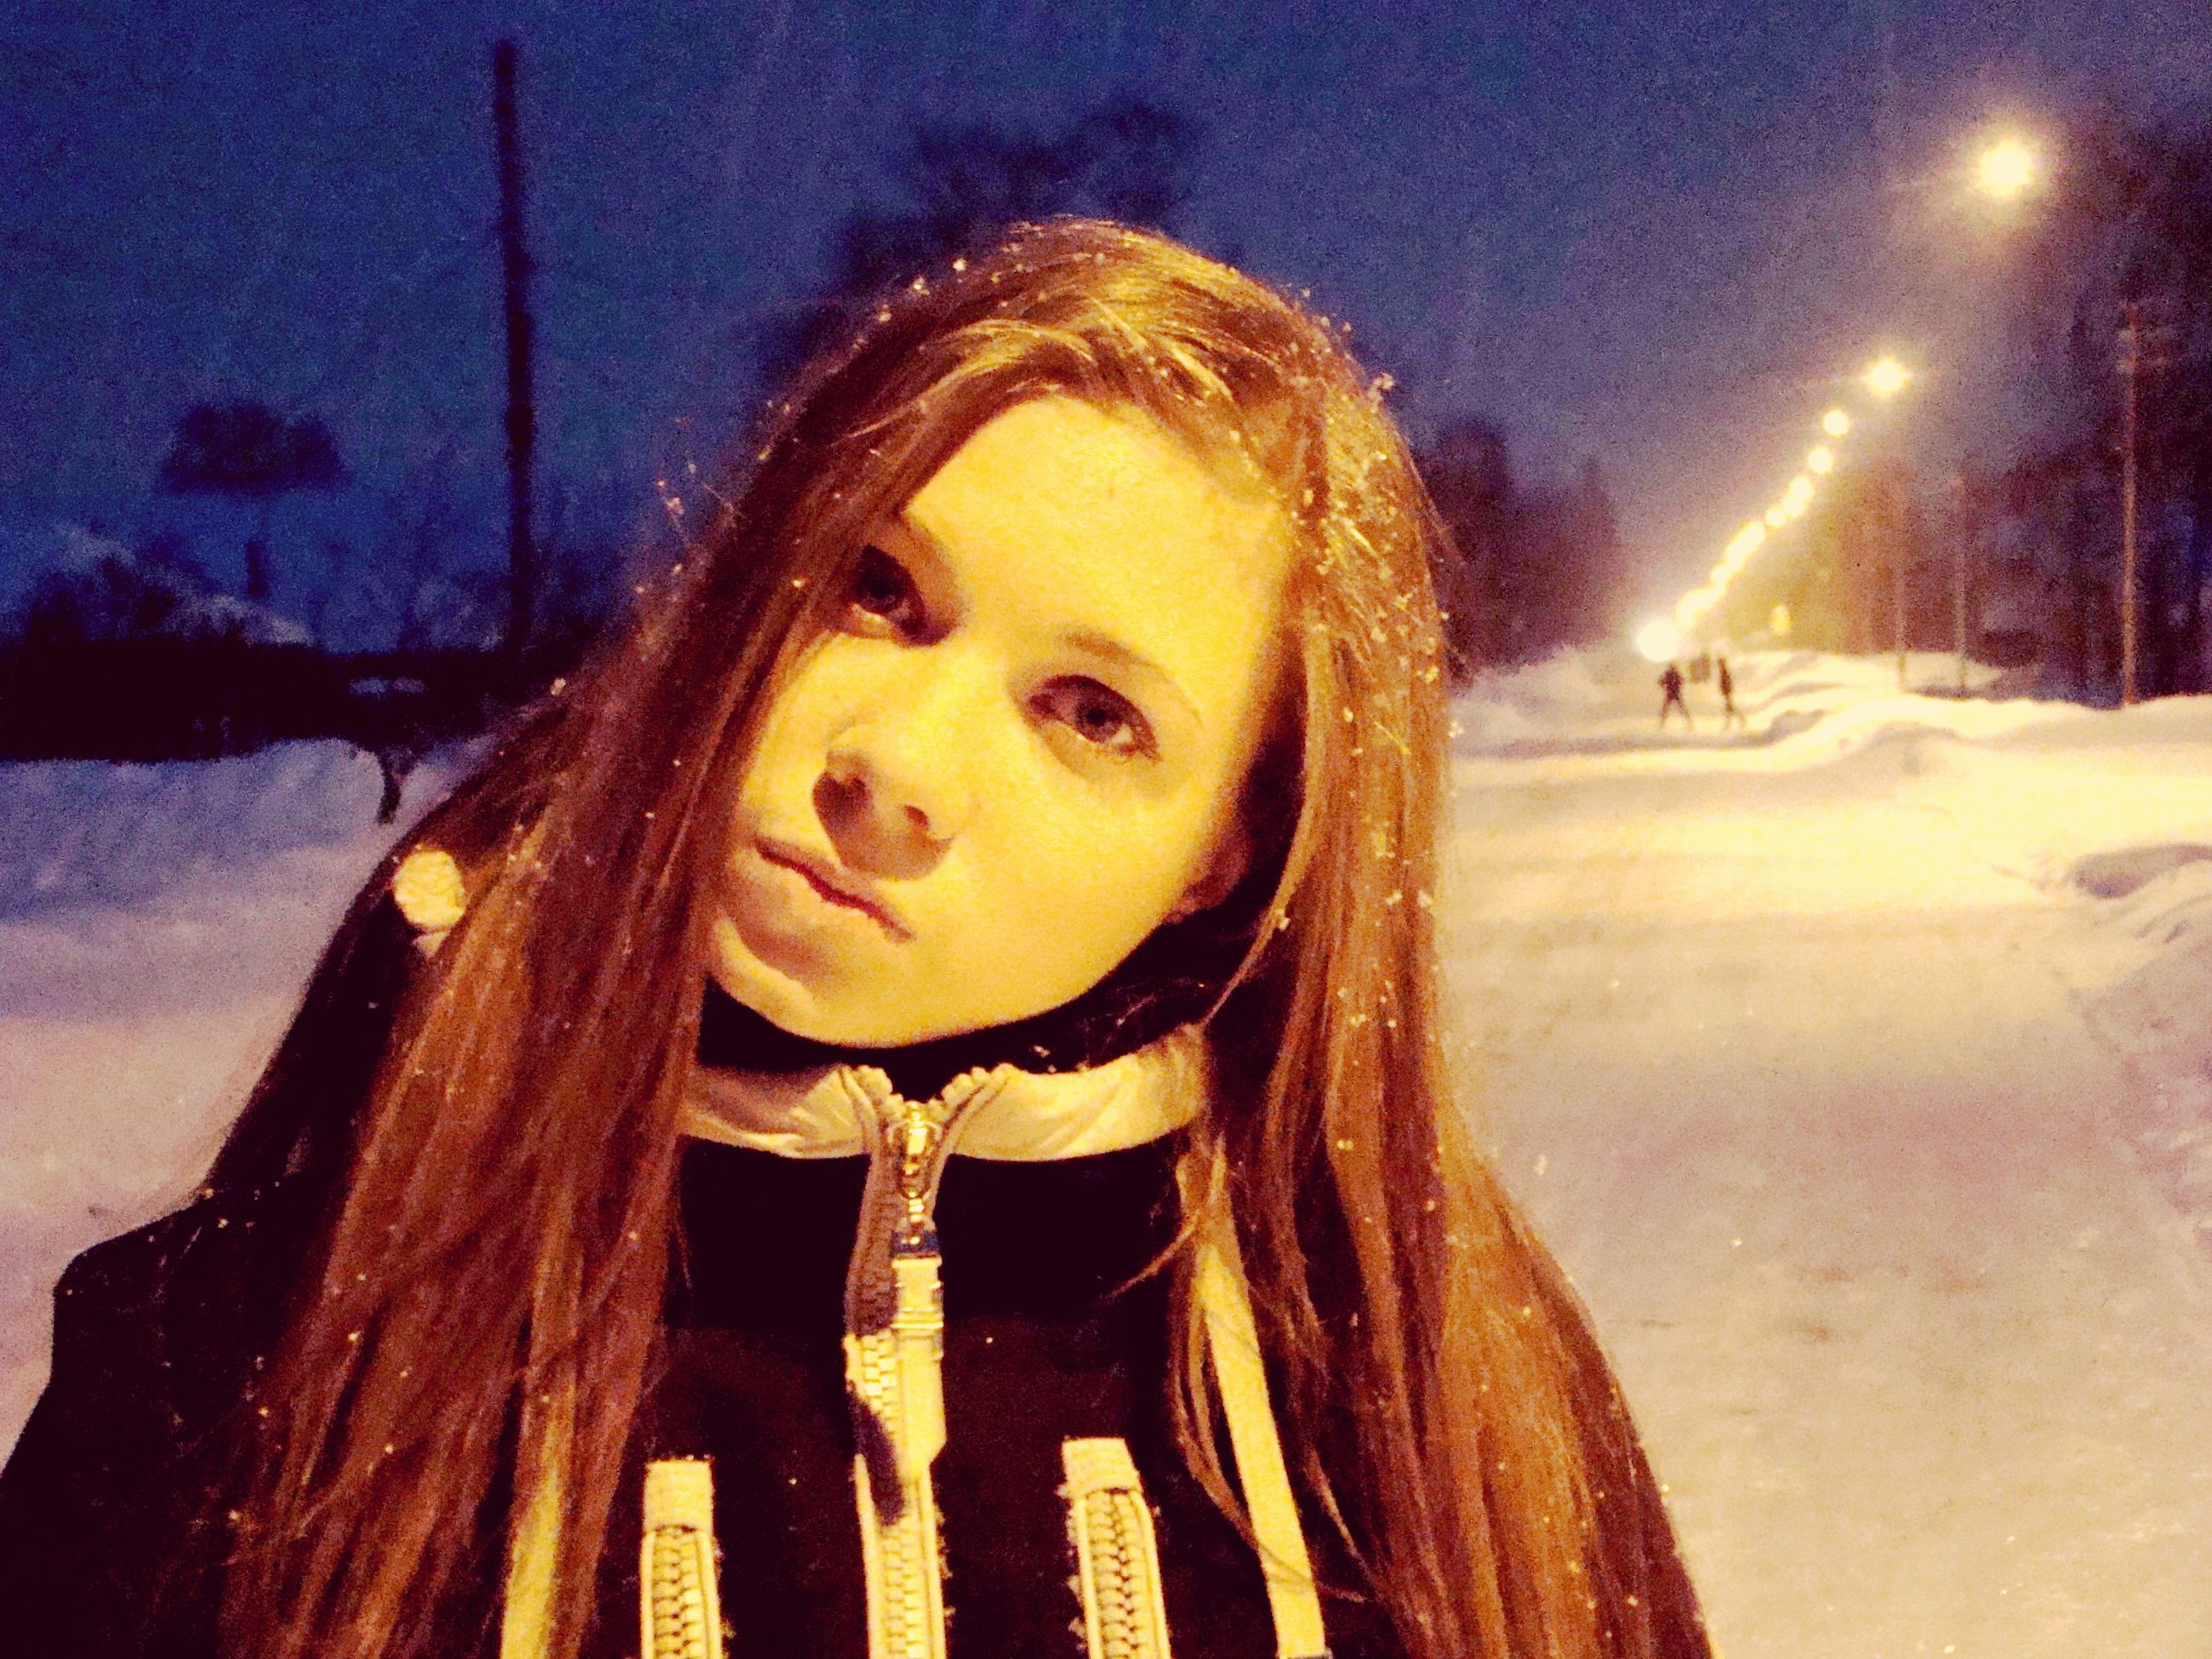 looking at camera, portrait, person, lifestyles, front view, young adult, winter, leisure activity, cold temperature, snow, smiling, happiness, young women, casual clothing, night, warm clothing, standing, headshot